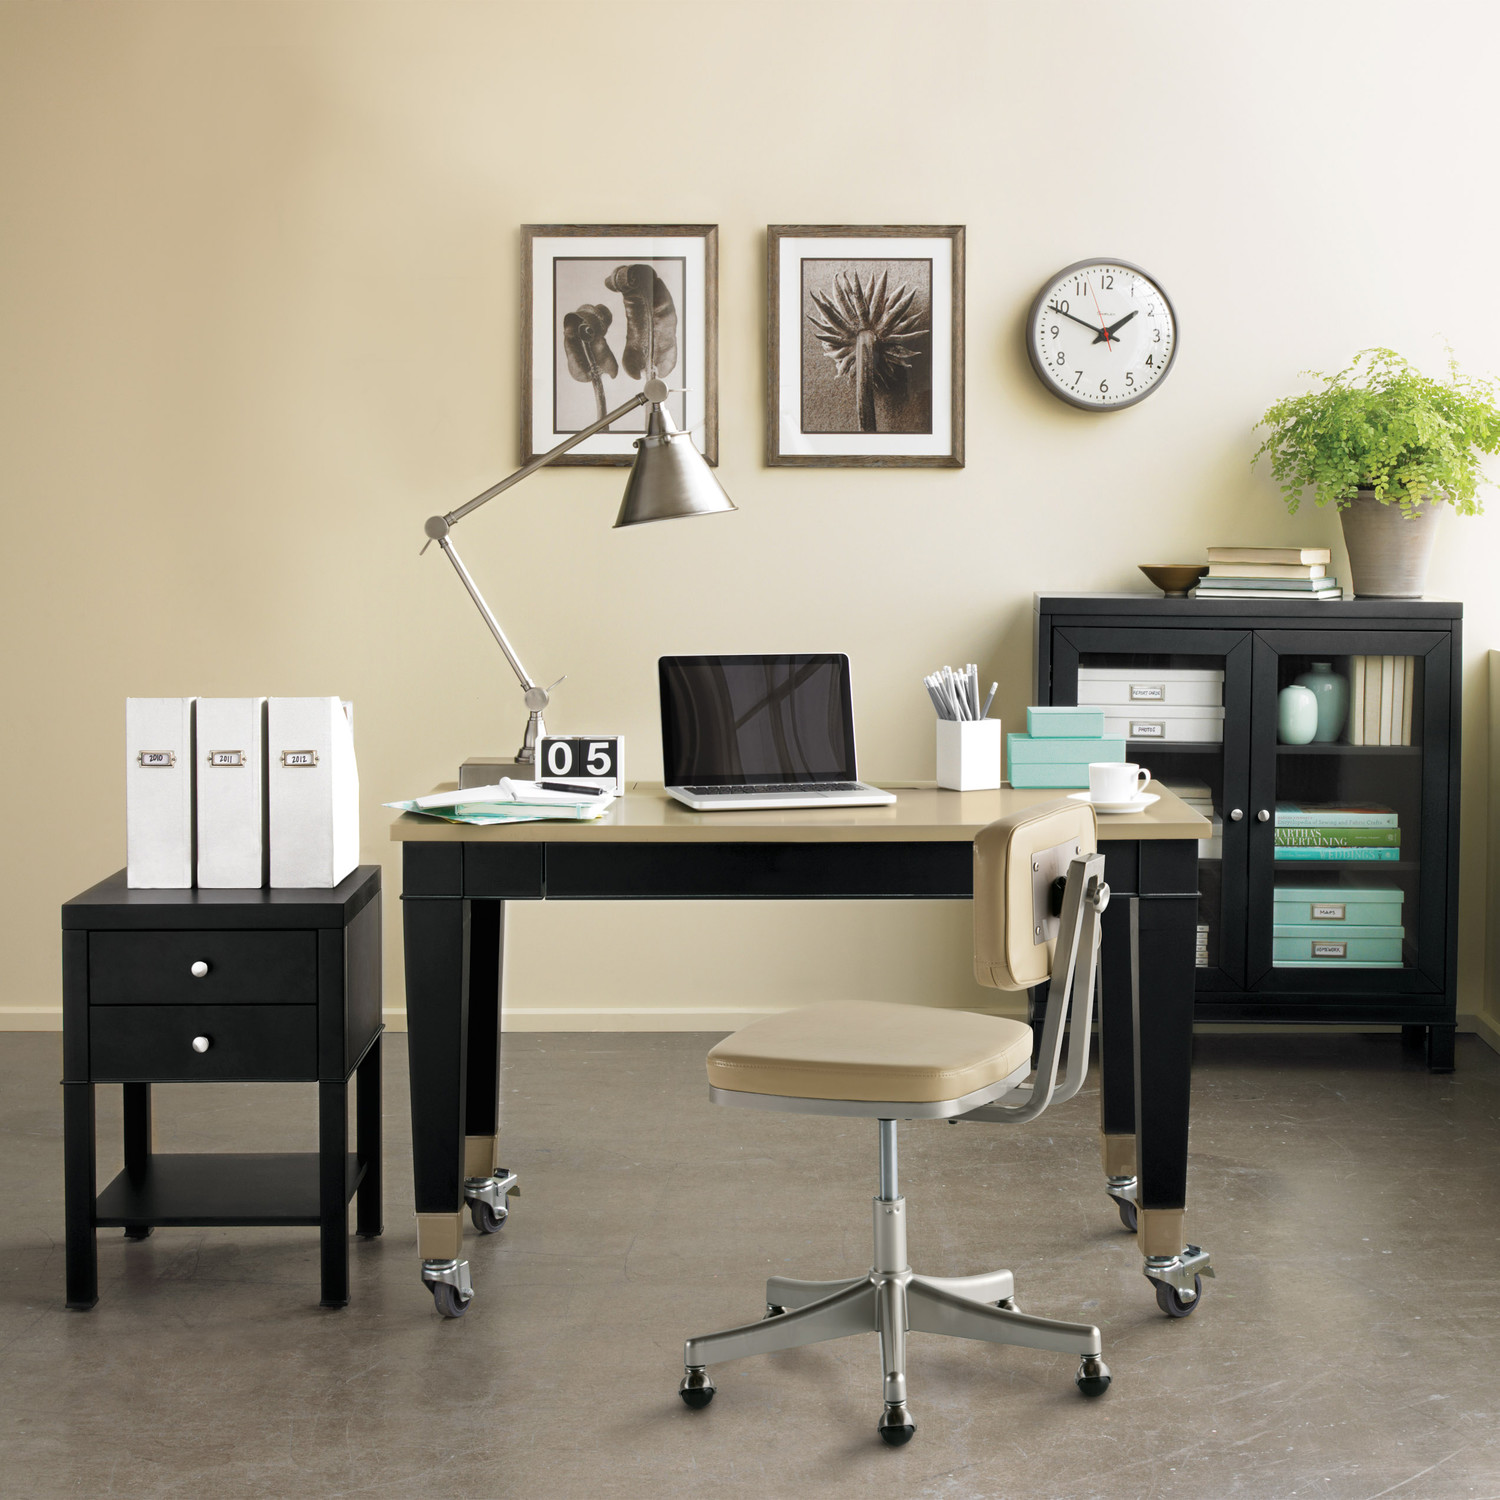 Home Office Desk Furniture home office corner desk Martha Stewart Home Office Furniture Martha Stewart